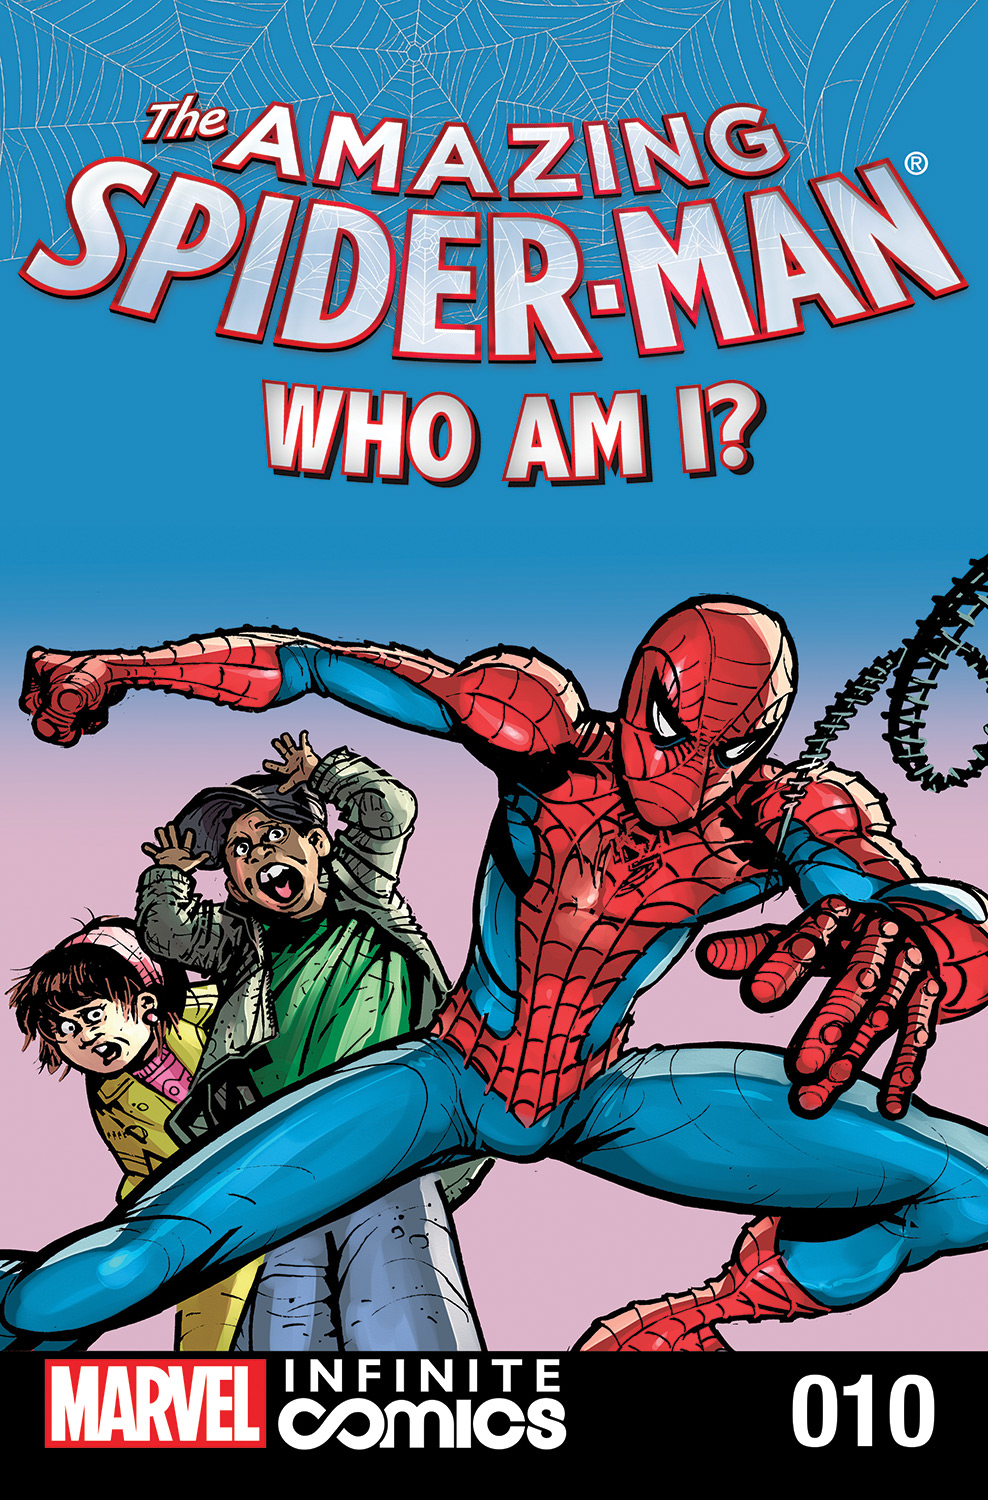 Amazing Spider-Man: Who Am I? Infinite Digital Comic (2014) #10